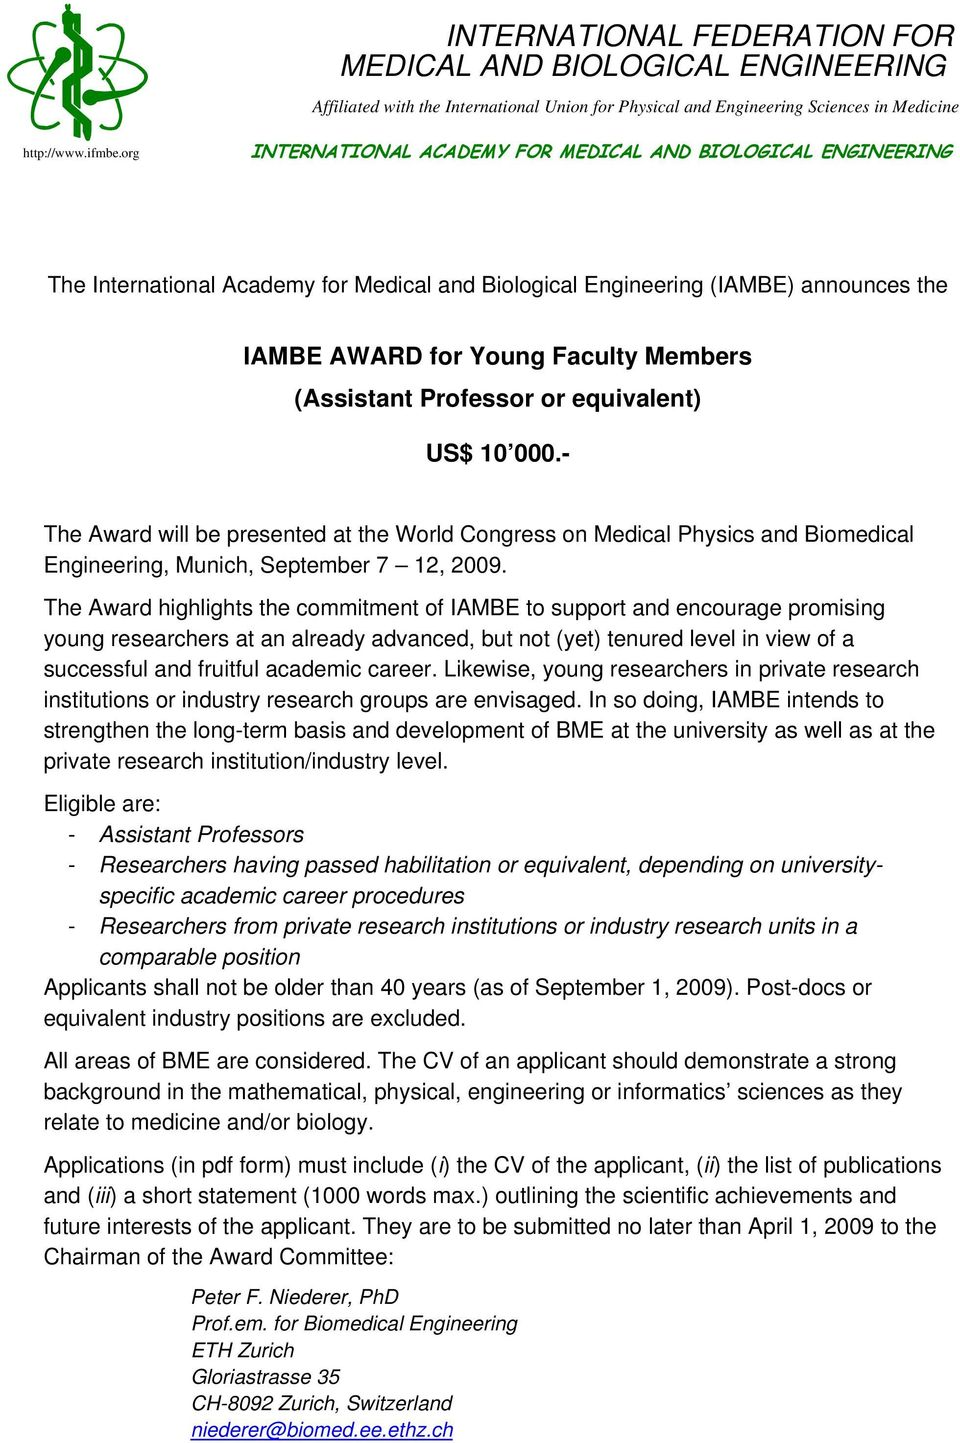 (Assistant Professor or equivalent) US$ 10 000.- The Award will be presented at the World Congress on Medical Physics and Biomedical Engineering, Munich, September 7 12, 2009.